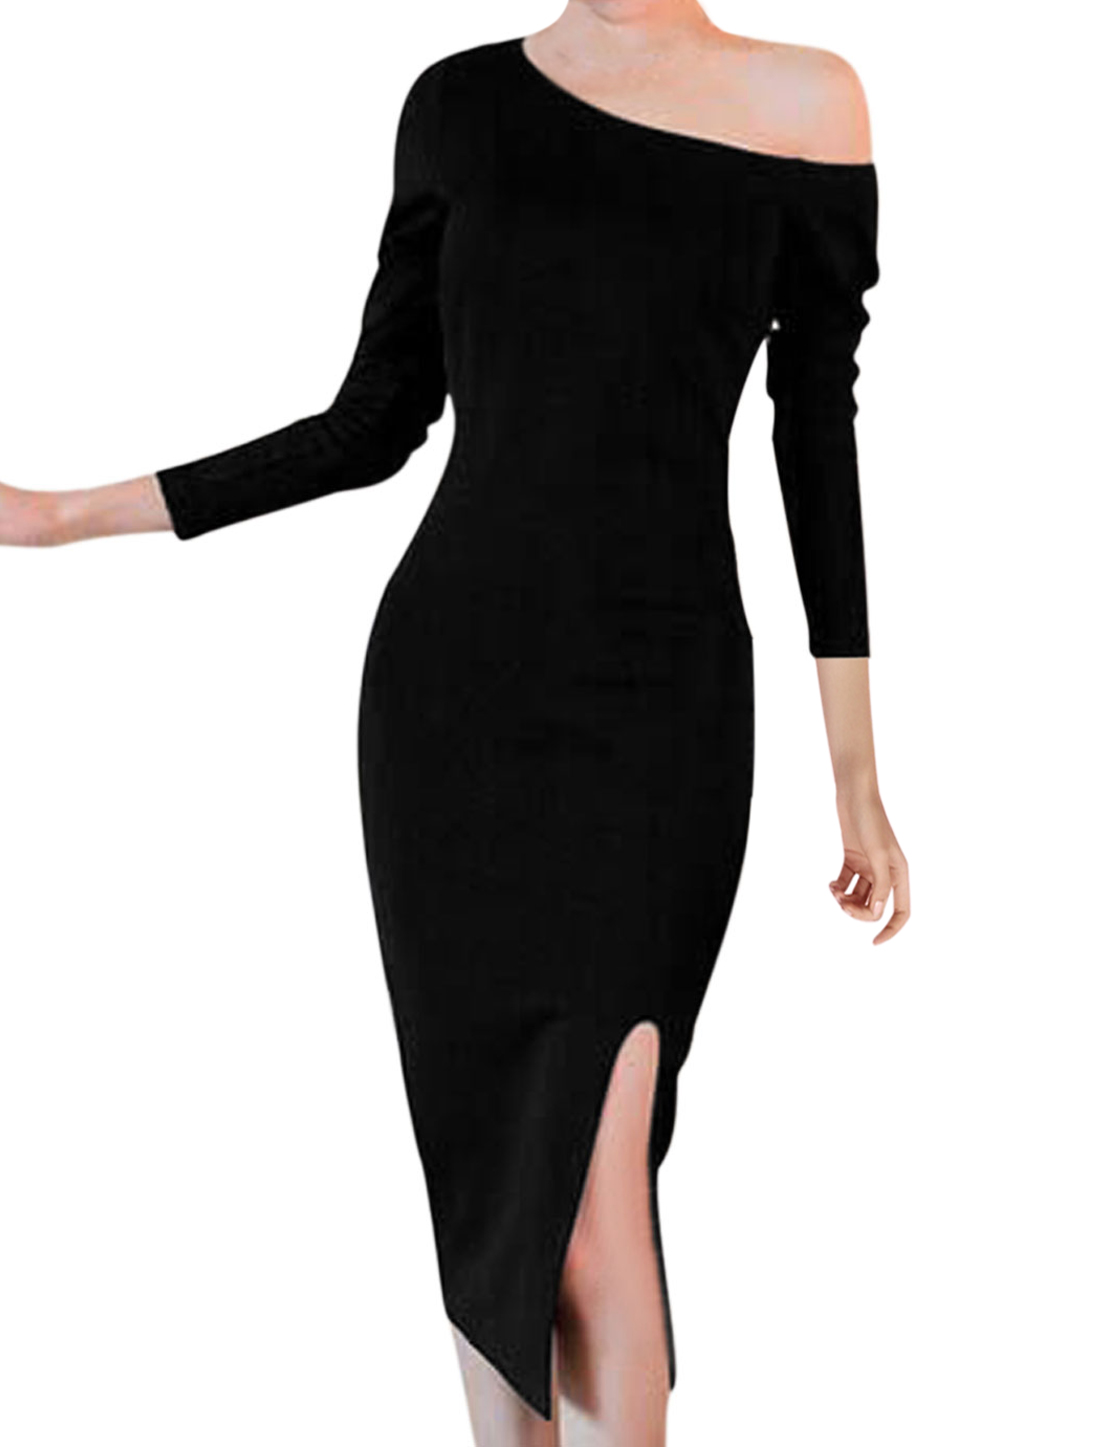 Women Black One Shoulder Long Sleeve Split Side Form-fitting Sheath Dress S